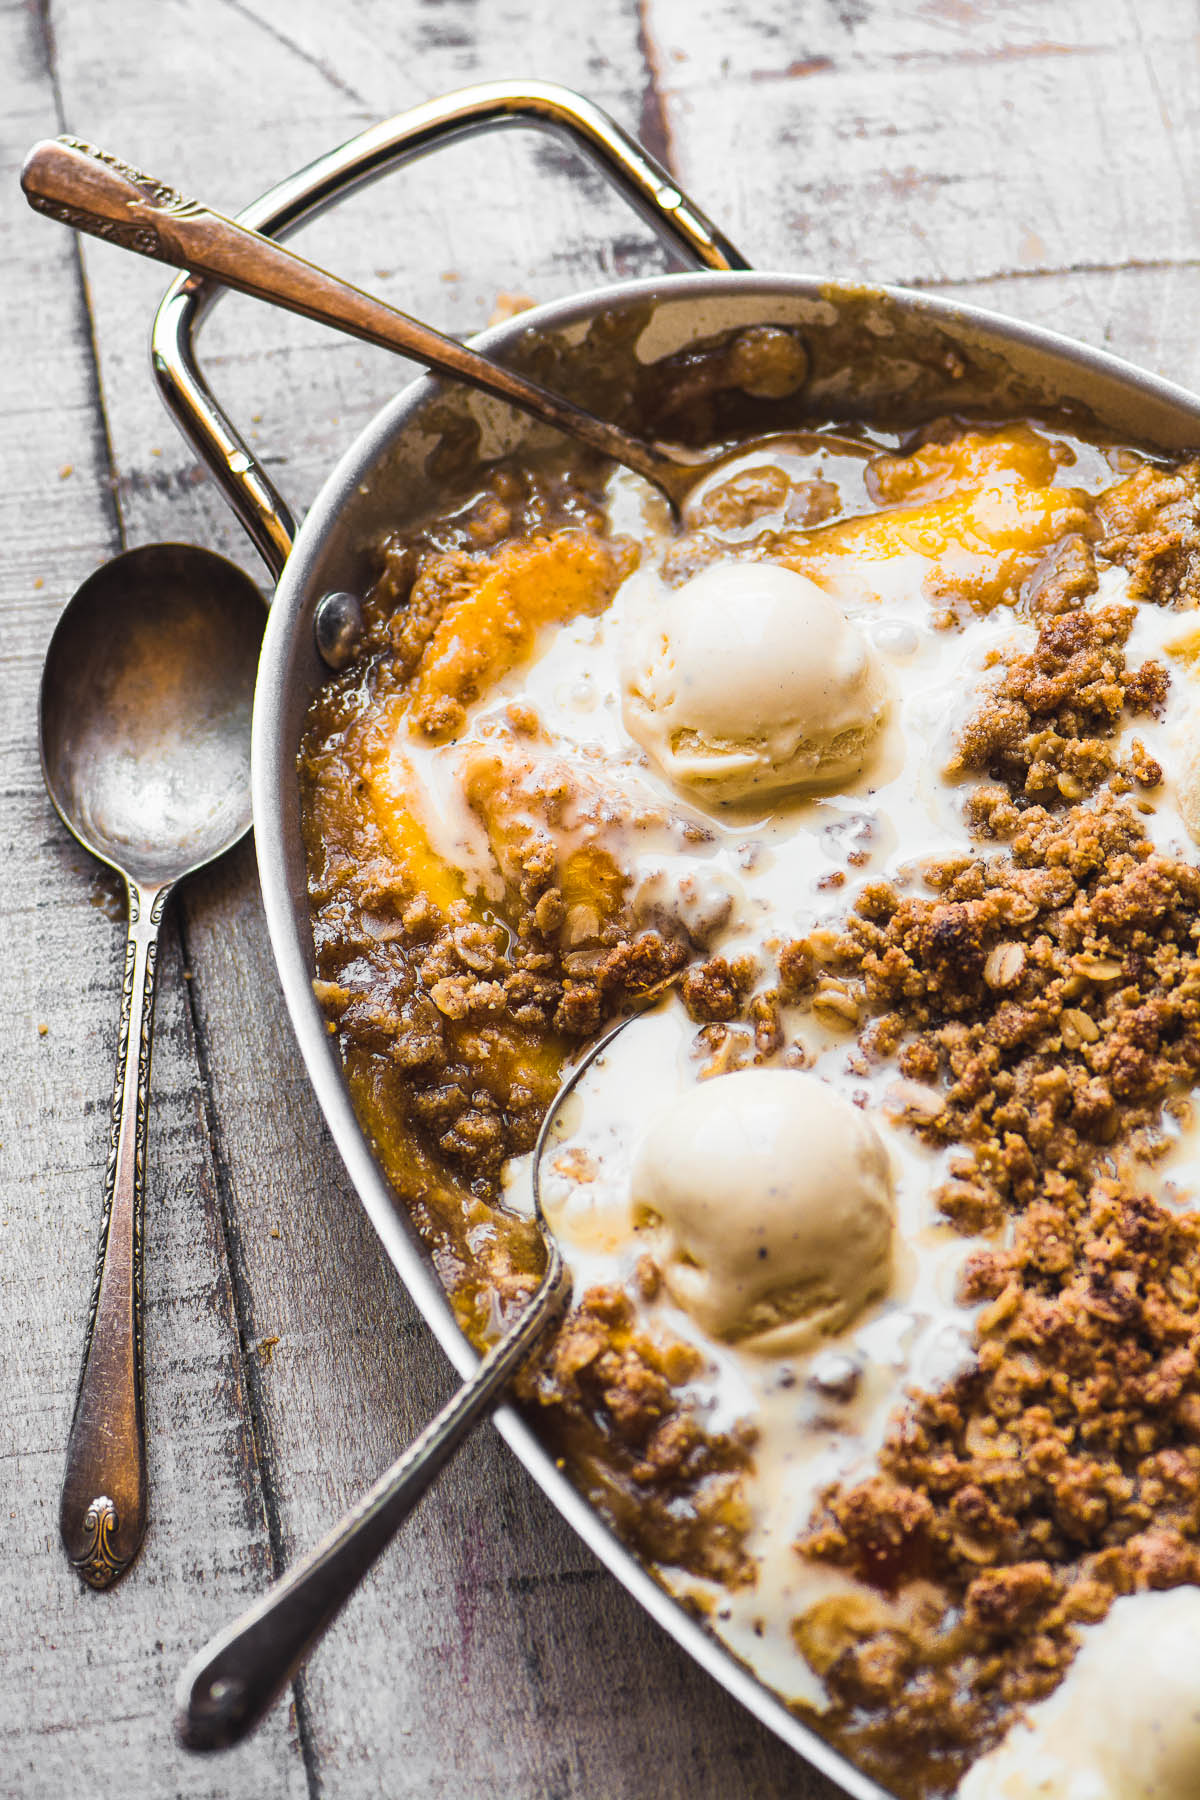 a pan of spiced peach crisp with scoops of ice cream